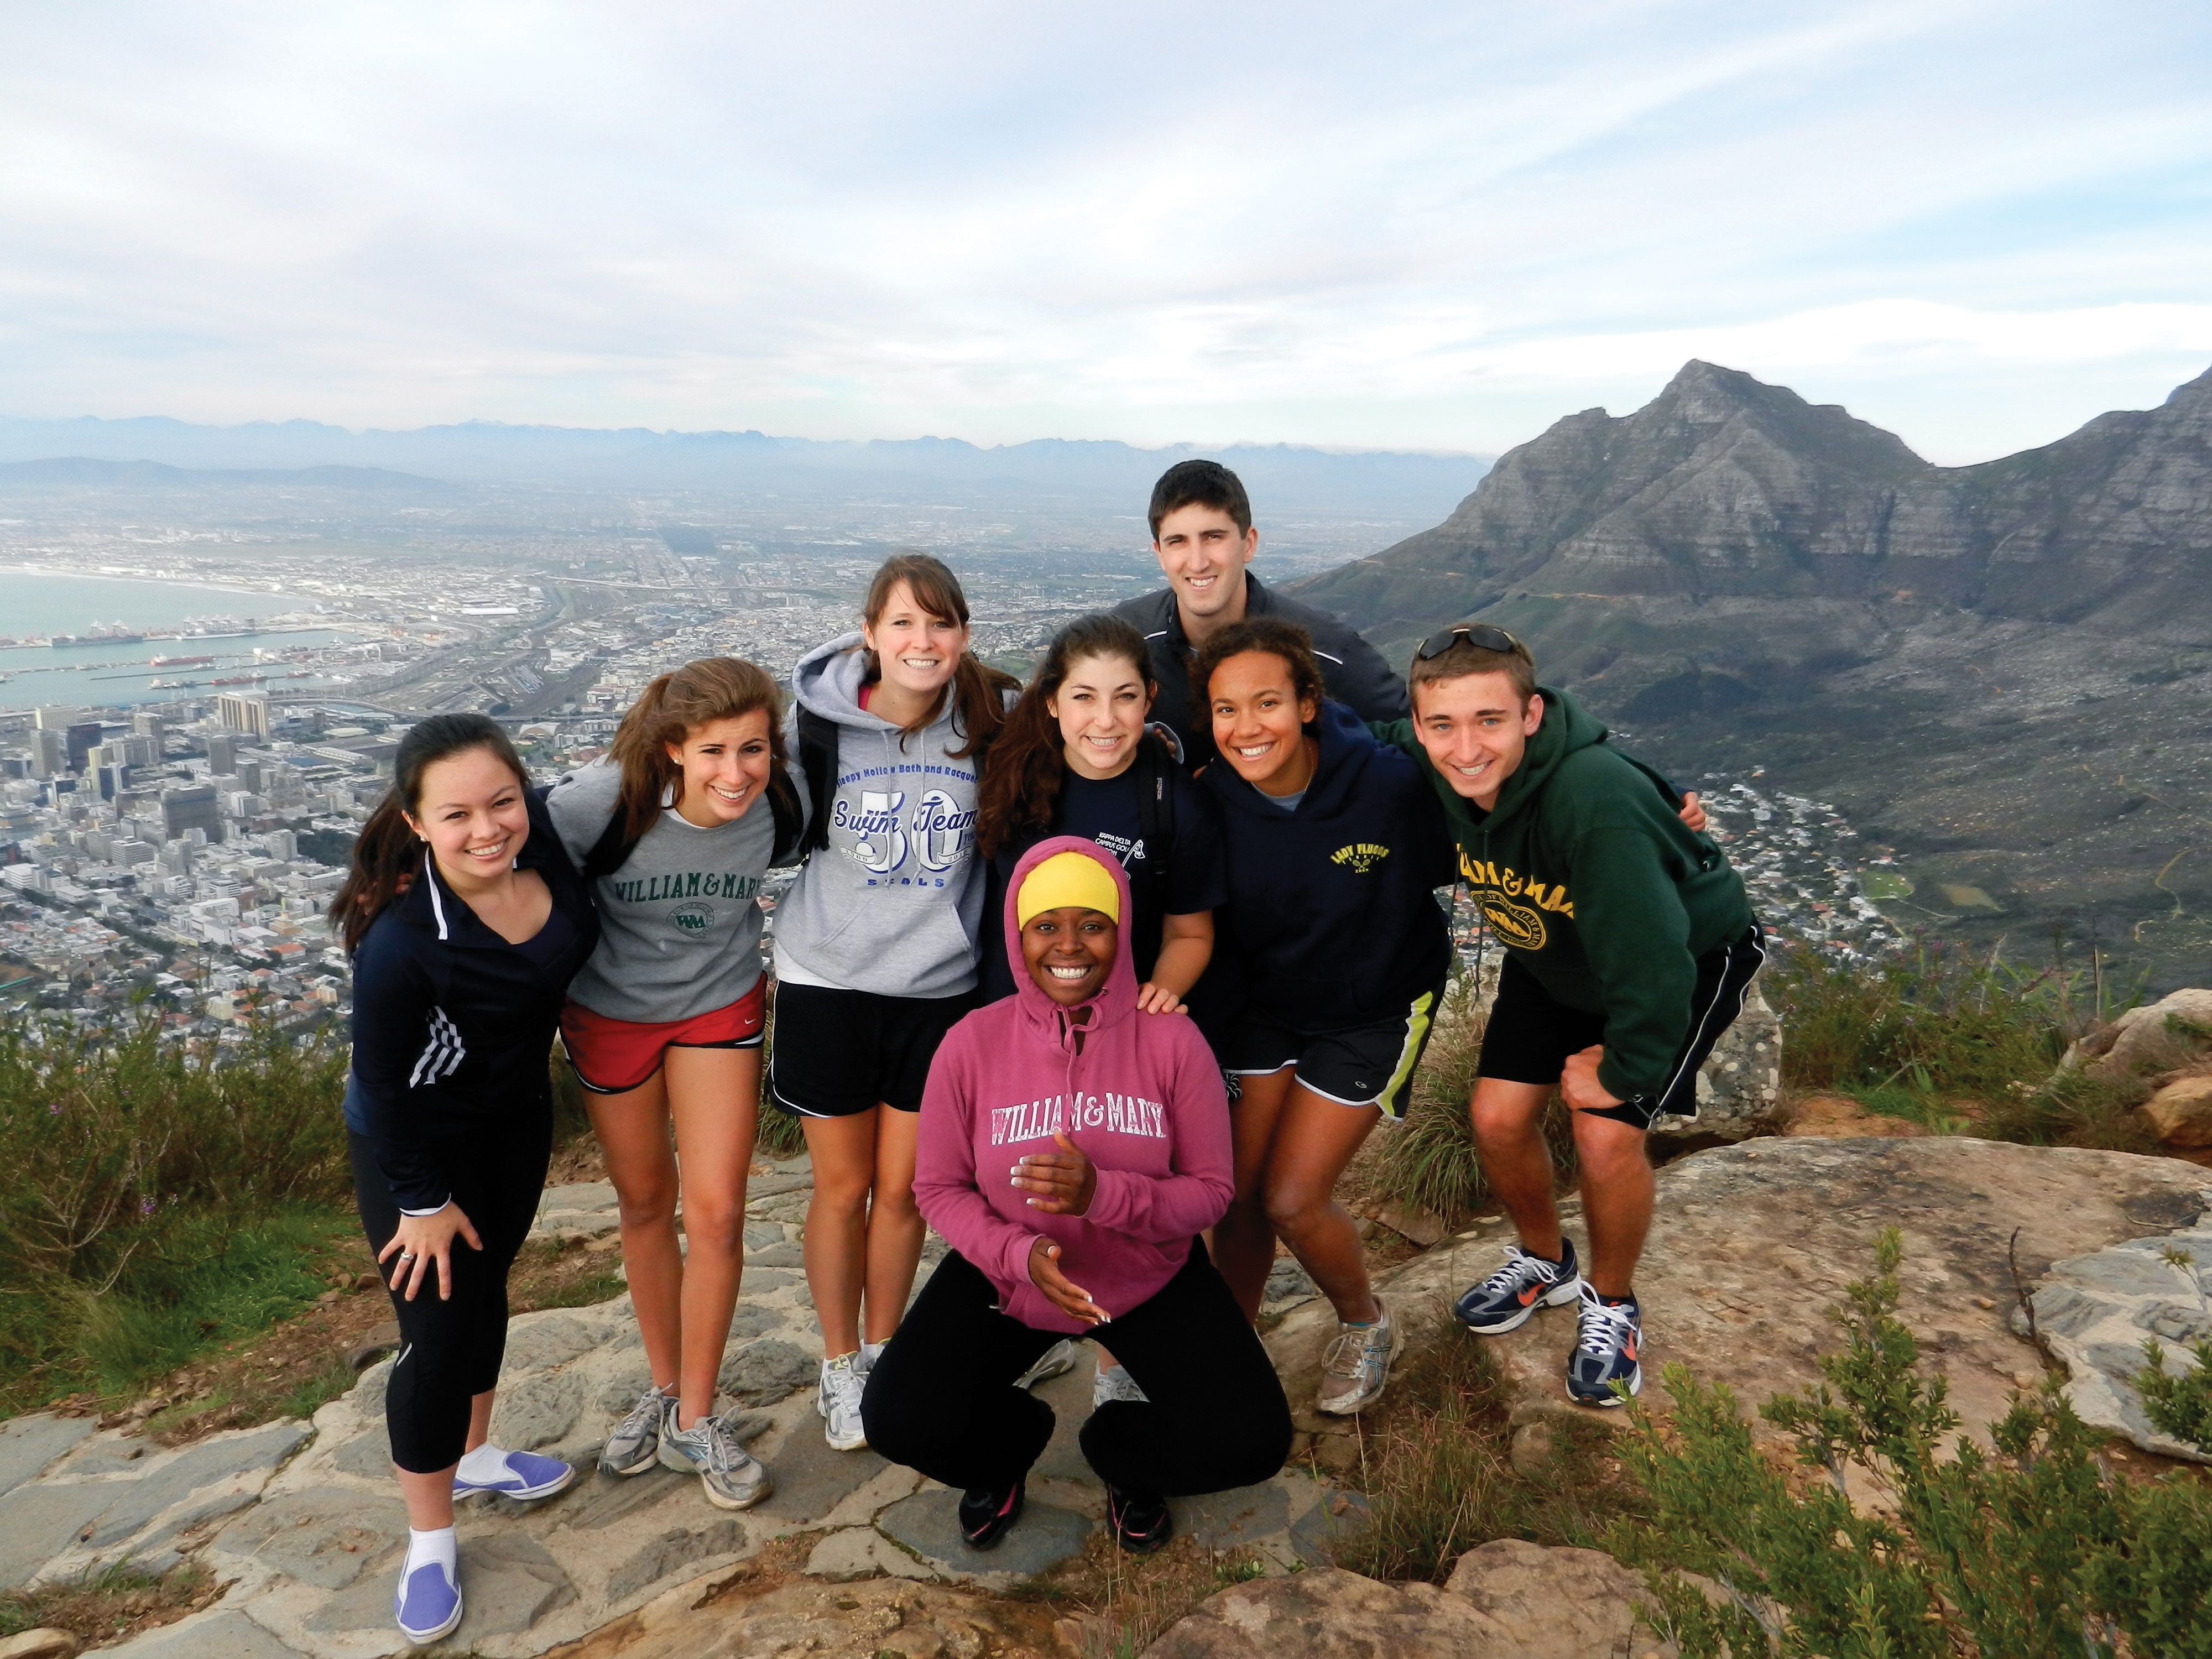 TRIBE ON TOP: There are more than 35 study-abroad programs at William & Mary, reaching 23 countries. W&M is No. 1 among public schools for under-graduate study-abroad.